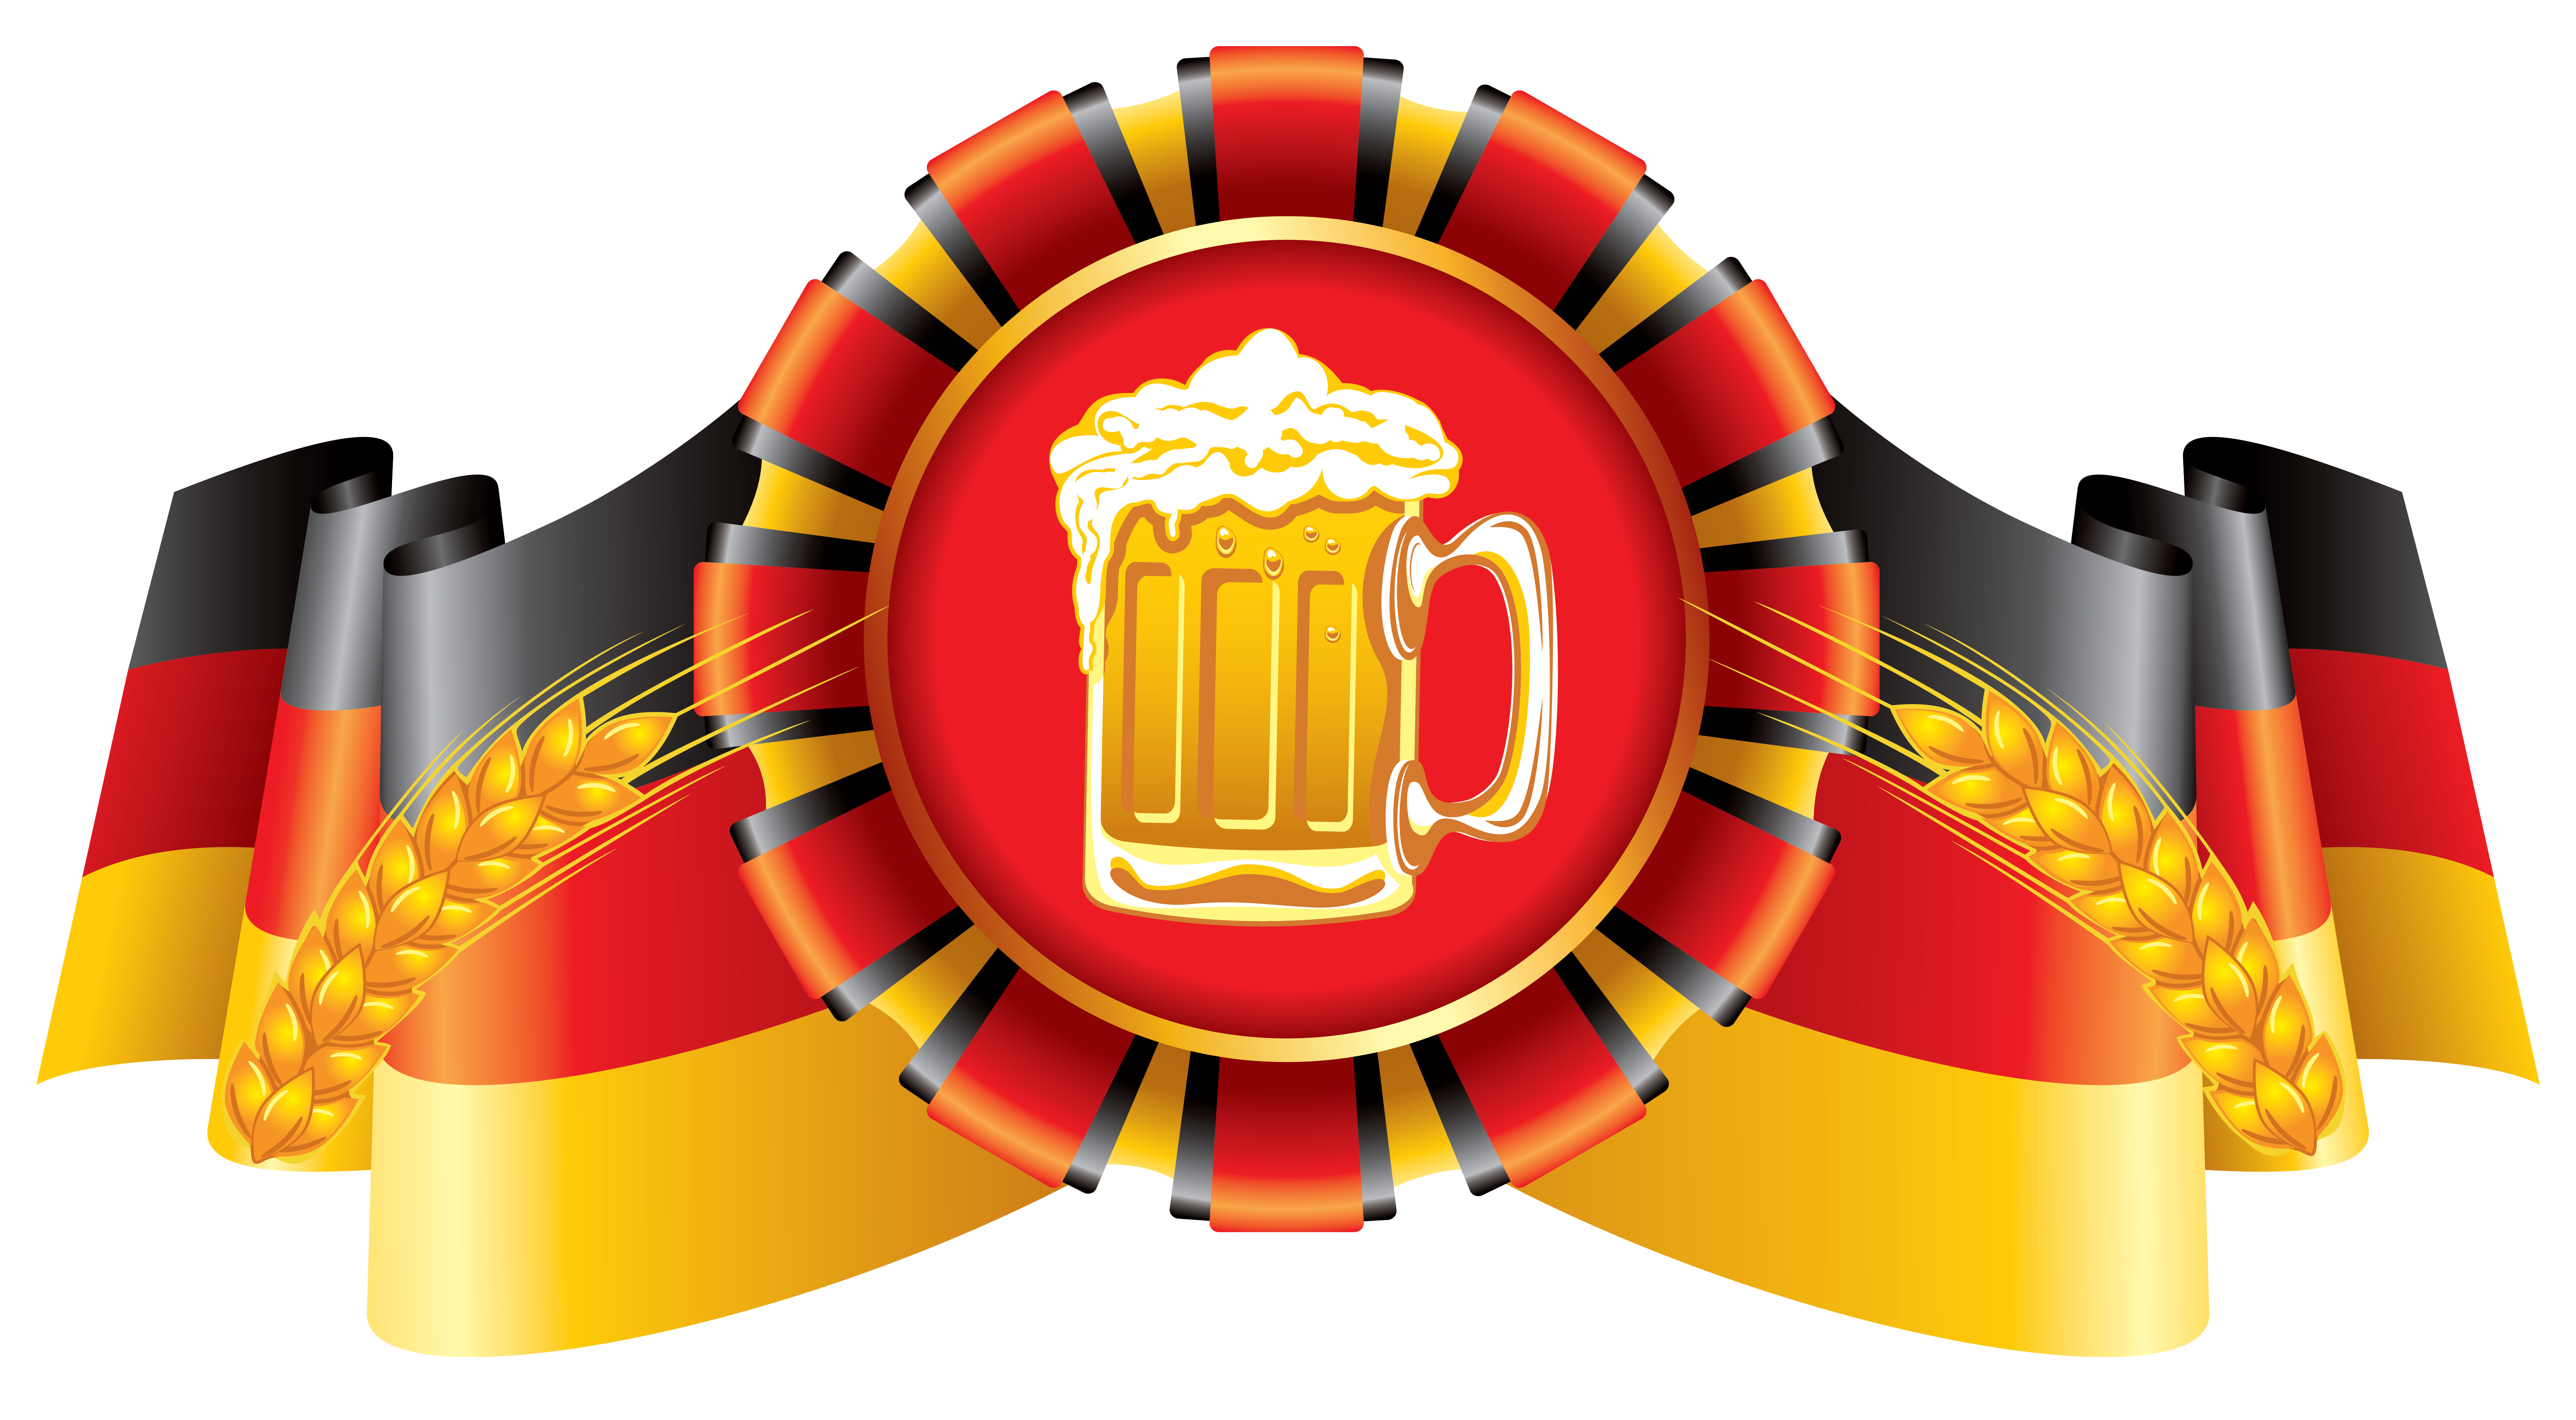 Oktoberfest german flag on pole clipart png graphic transparent library Oktoberfest Decor German Flag and Beer PNG Clipart Image | Gallery ... graphic transparent library